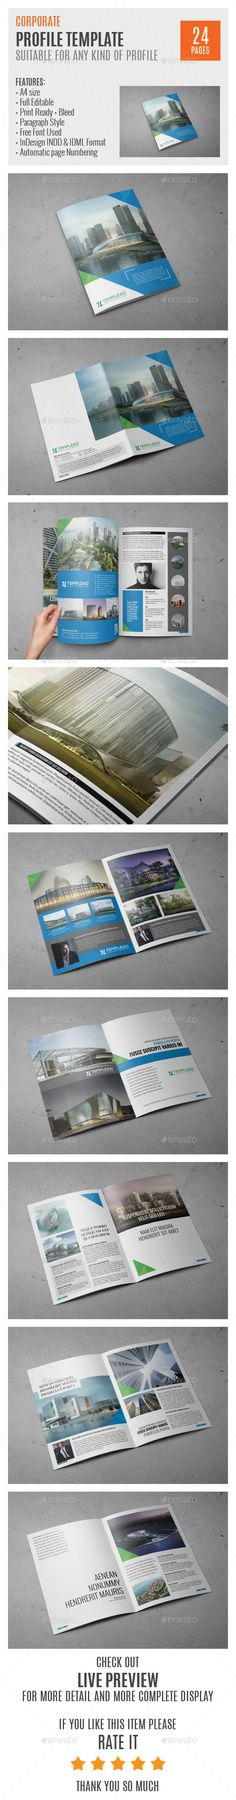 InDesign Modern Business Brochure Template Business brochure - corporate profile template